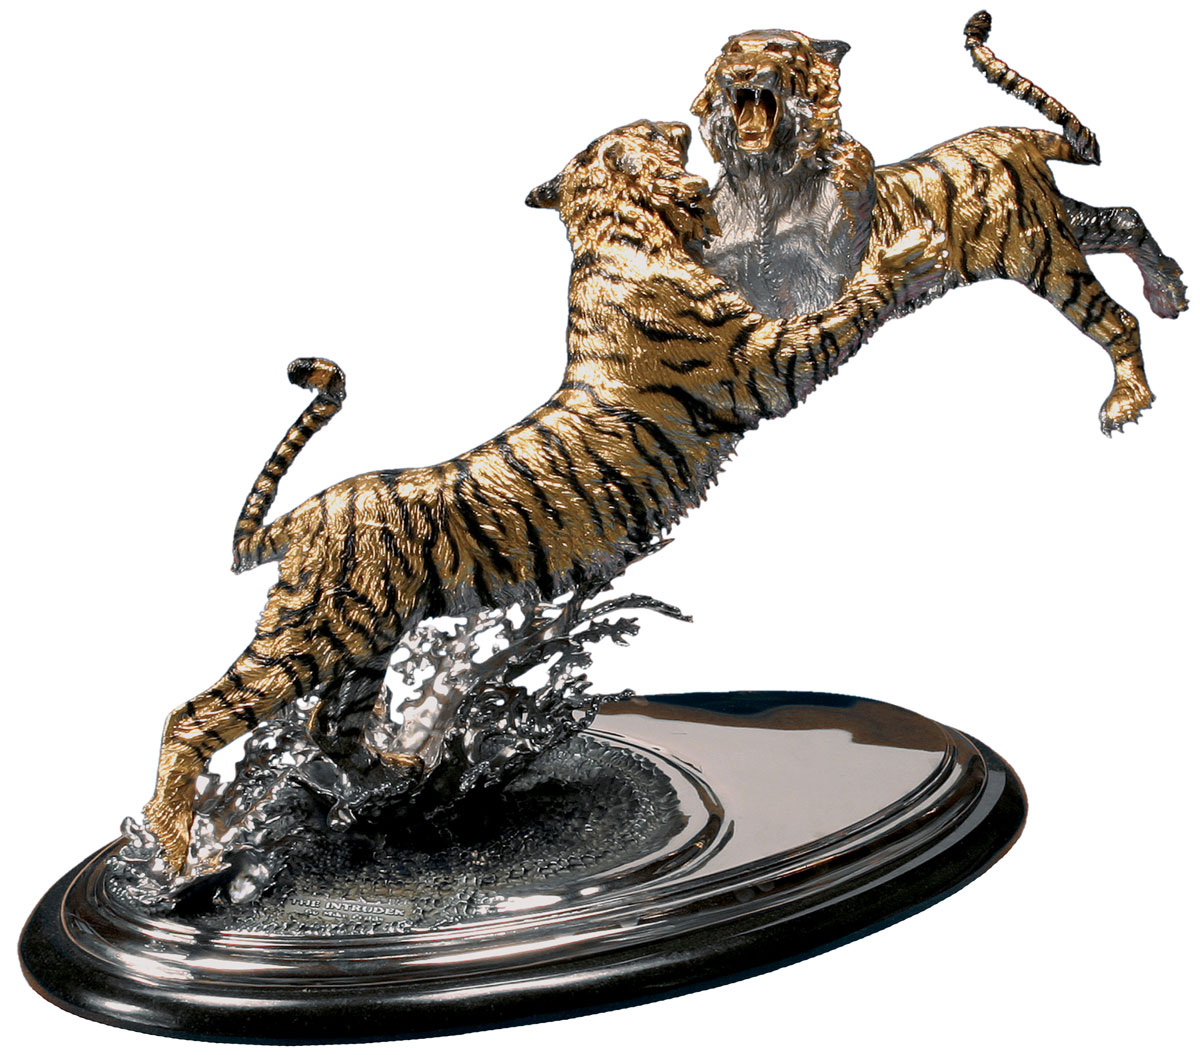 The Intruder Bengal Tiger Sculpture